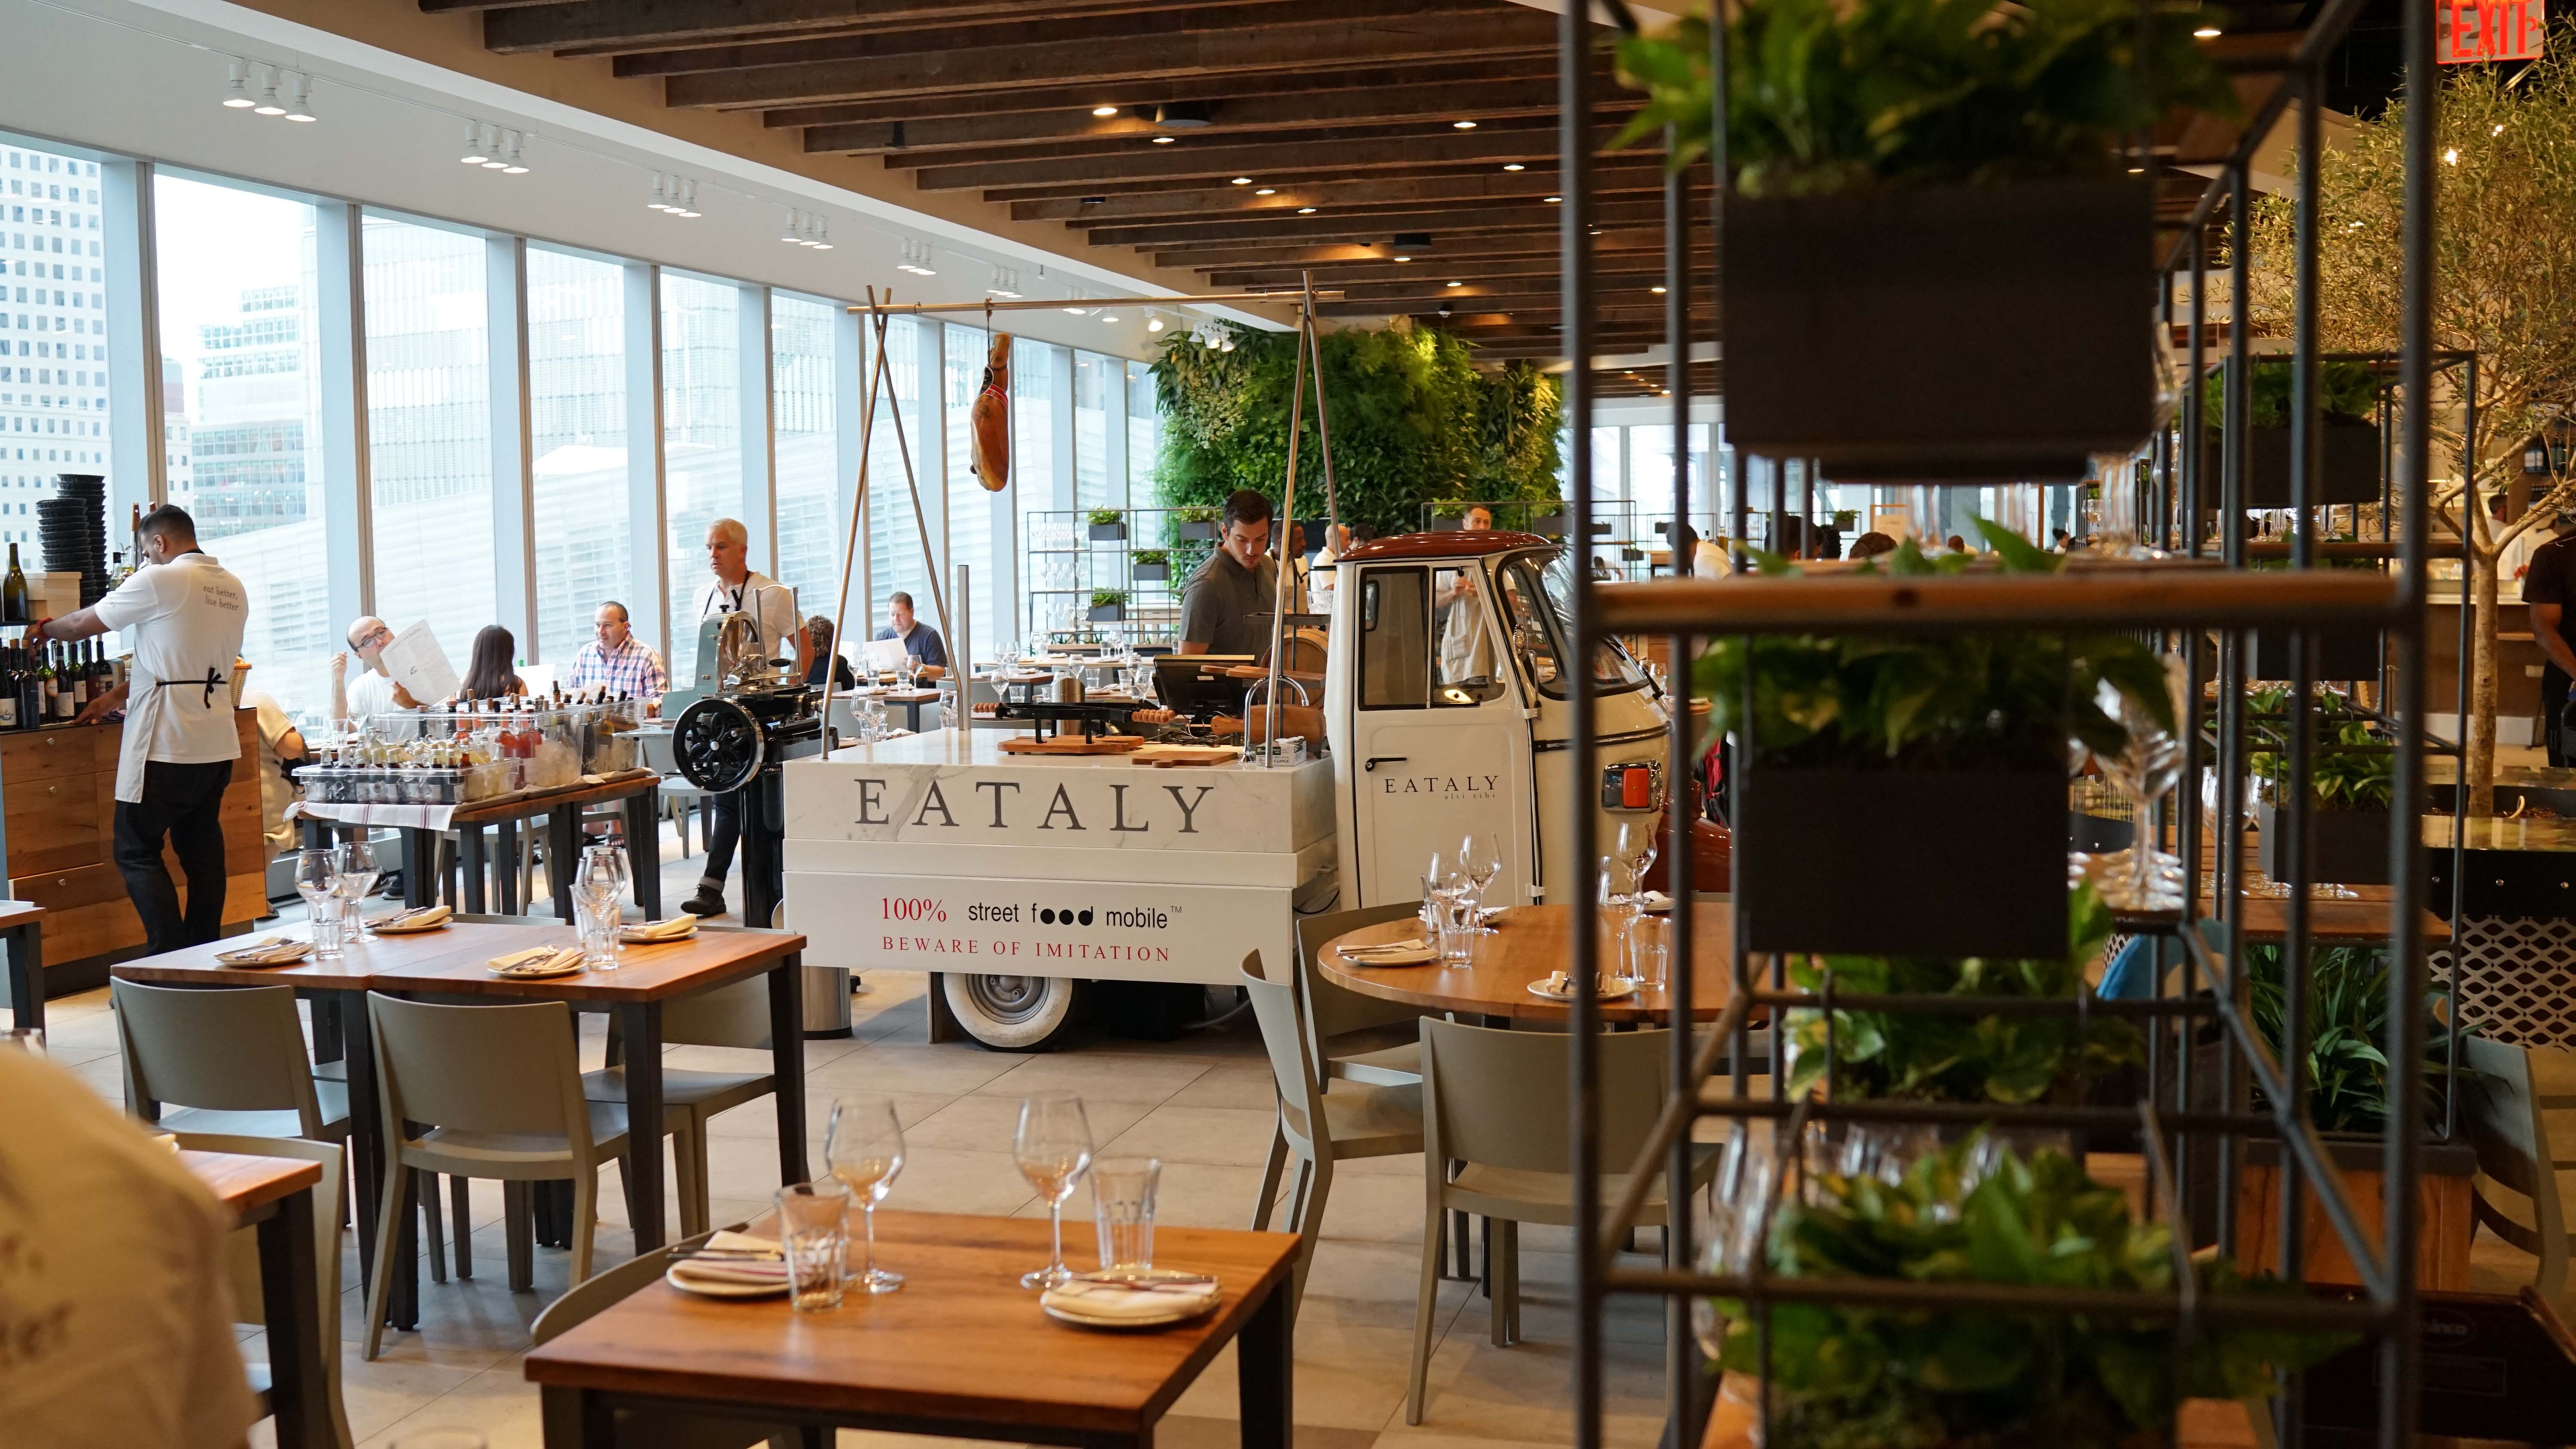 Eataly dining room truck